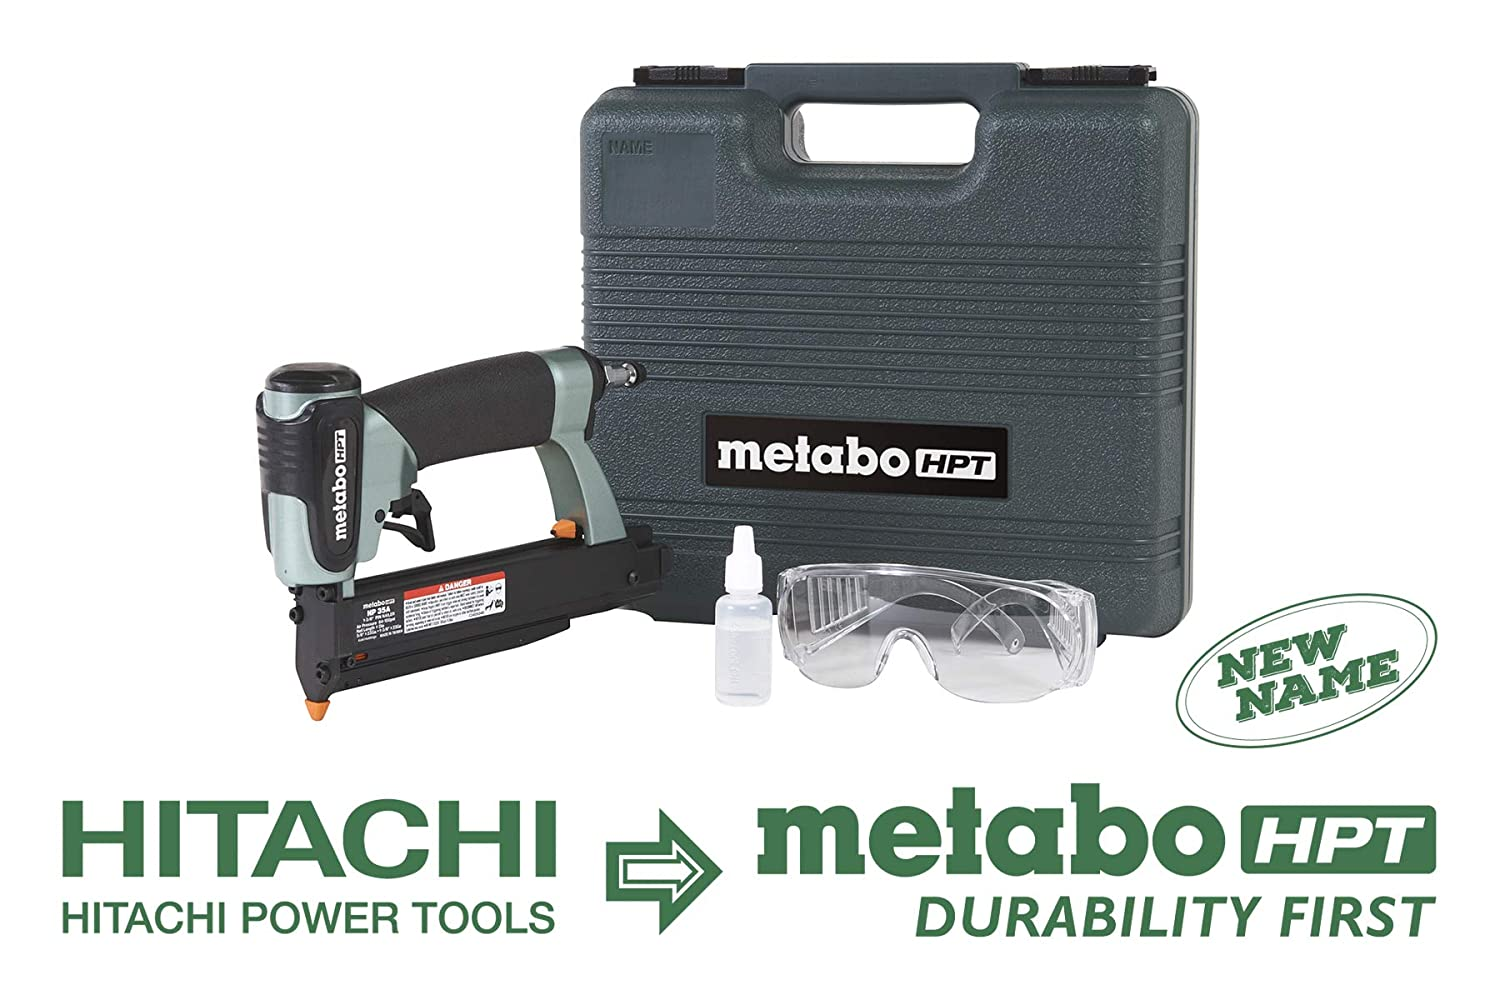 Metabo HPT NP35A Pin Nailer, 23 Gauge, 5 8 to 1-3 8 Pin Nails, Dual Trigger, Depth Adjustment, No Mar Tip – 2, Reload Indicator, Removable Nose Plate, Large Capacity Pinner, 5 Year Warranty